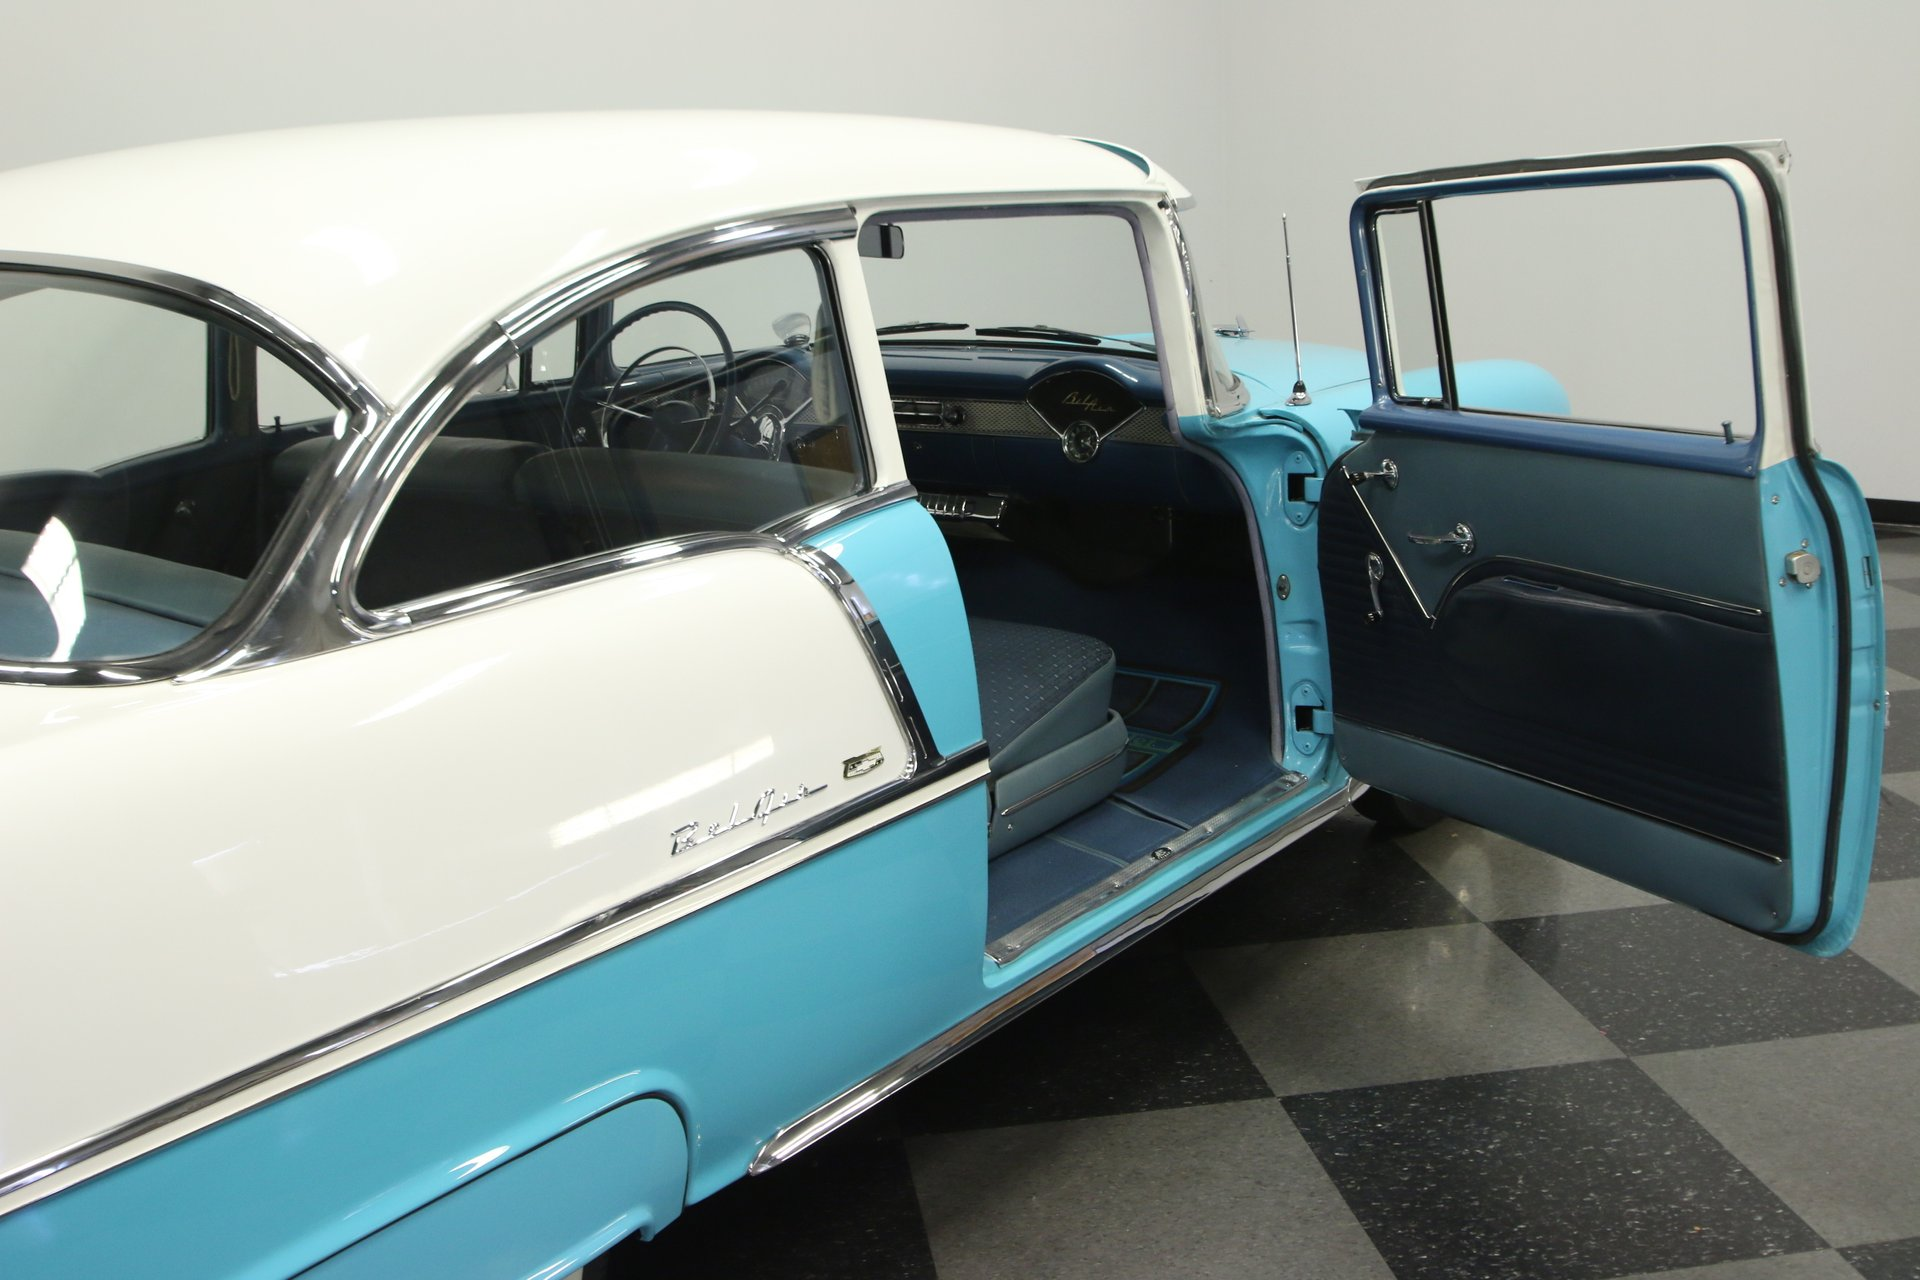 1955 Chevrolet Bel Air Streetside Classics The Nations Trusted Chevy 2 Door Sedan For Sale View 360